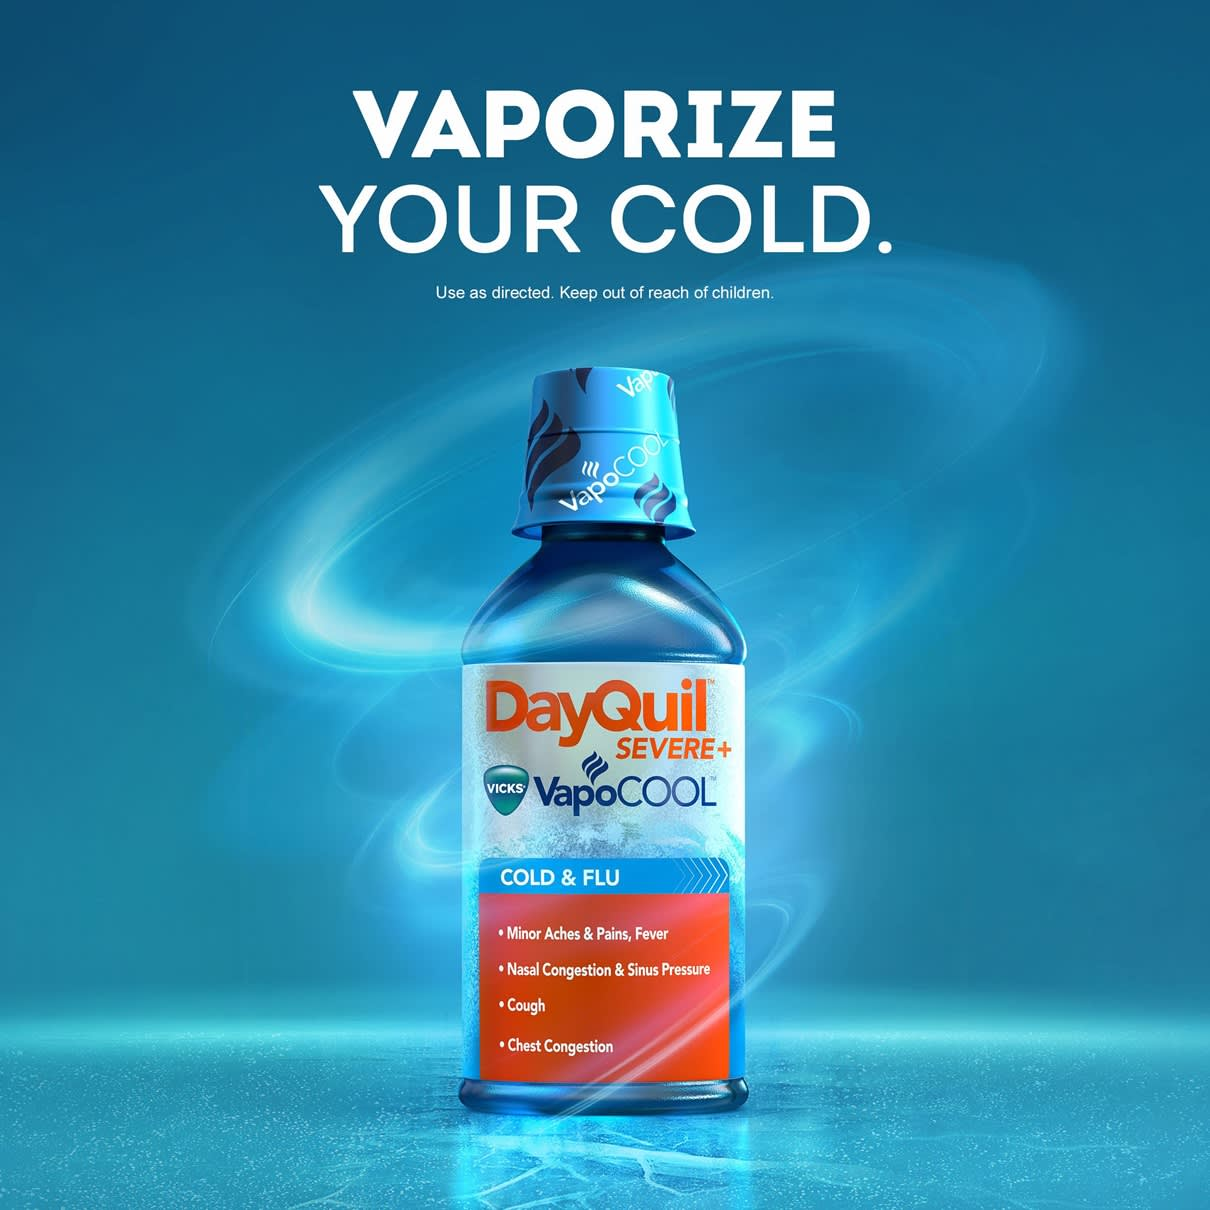 Vaporize Your Cold